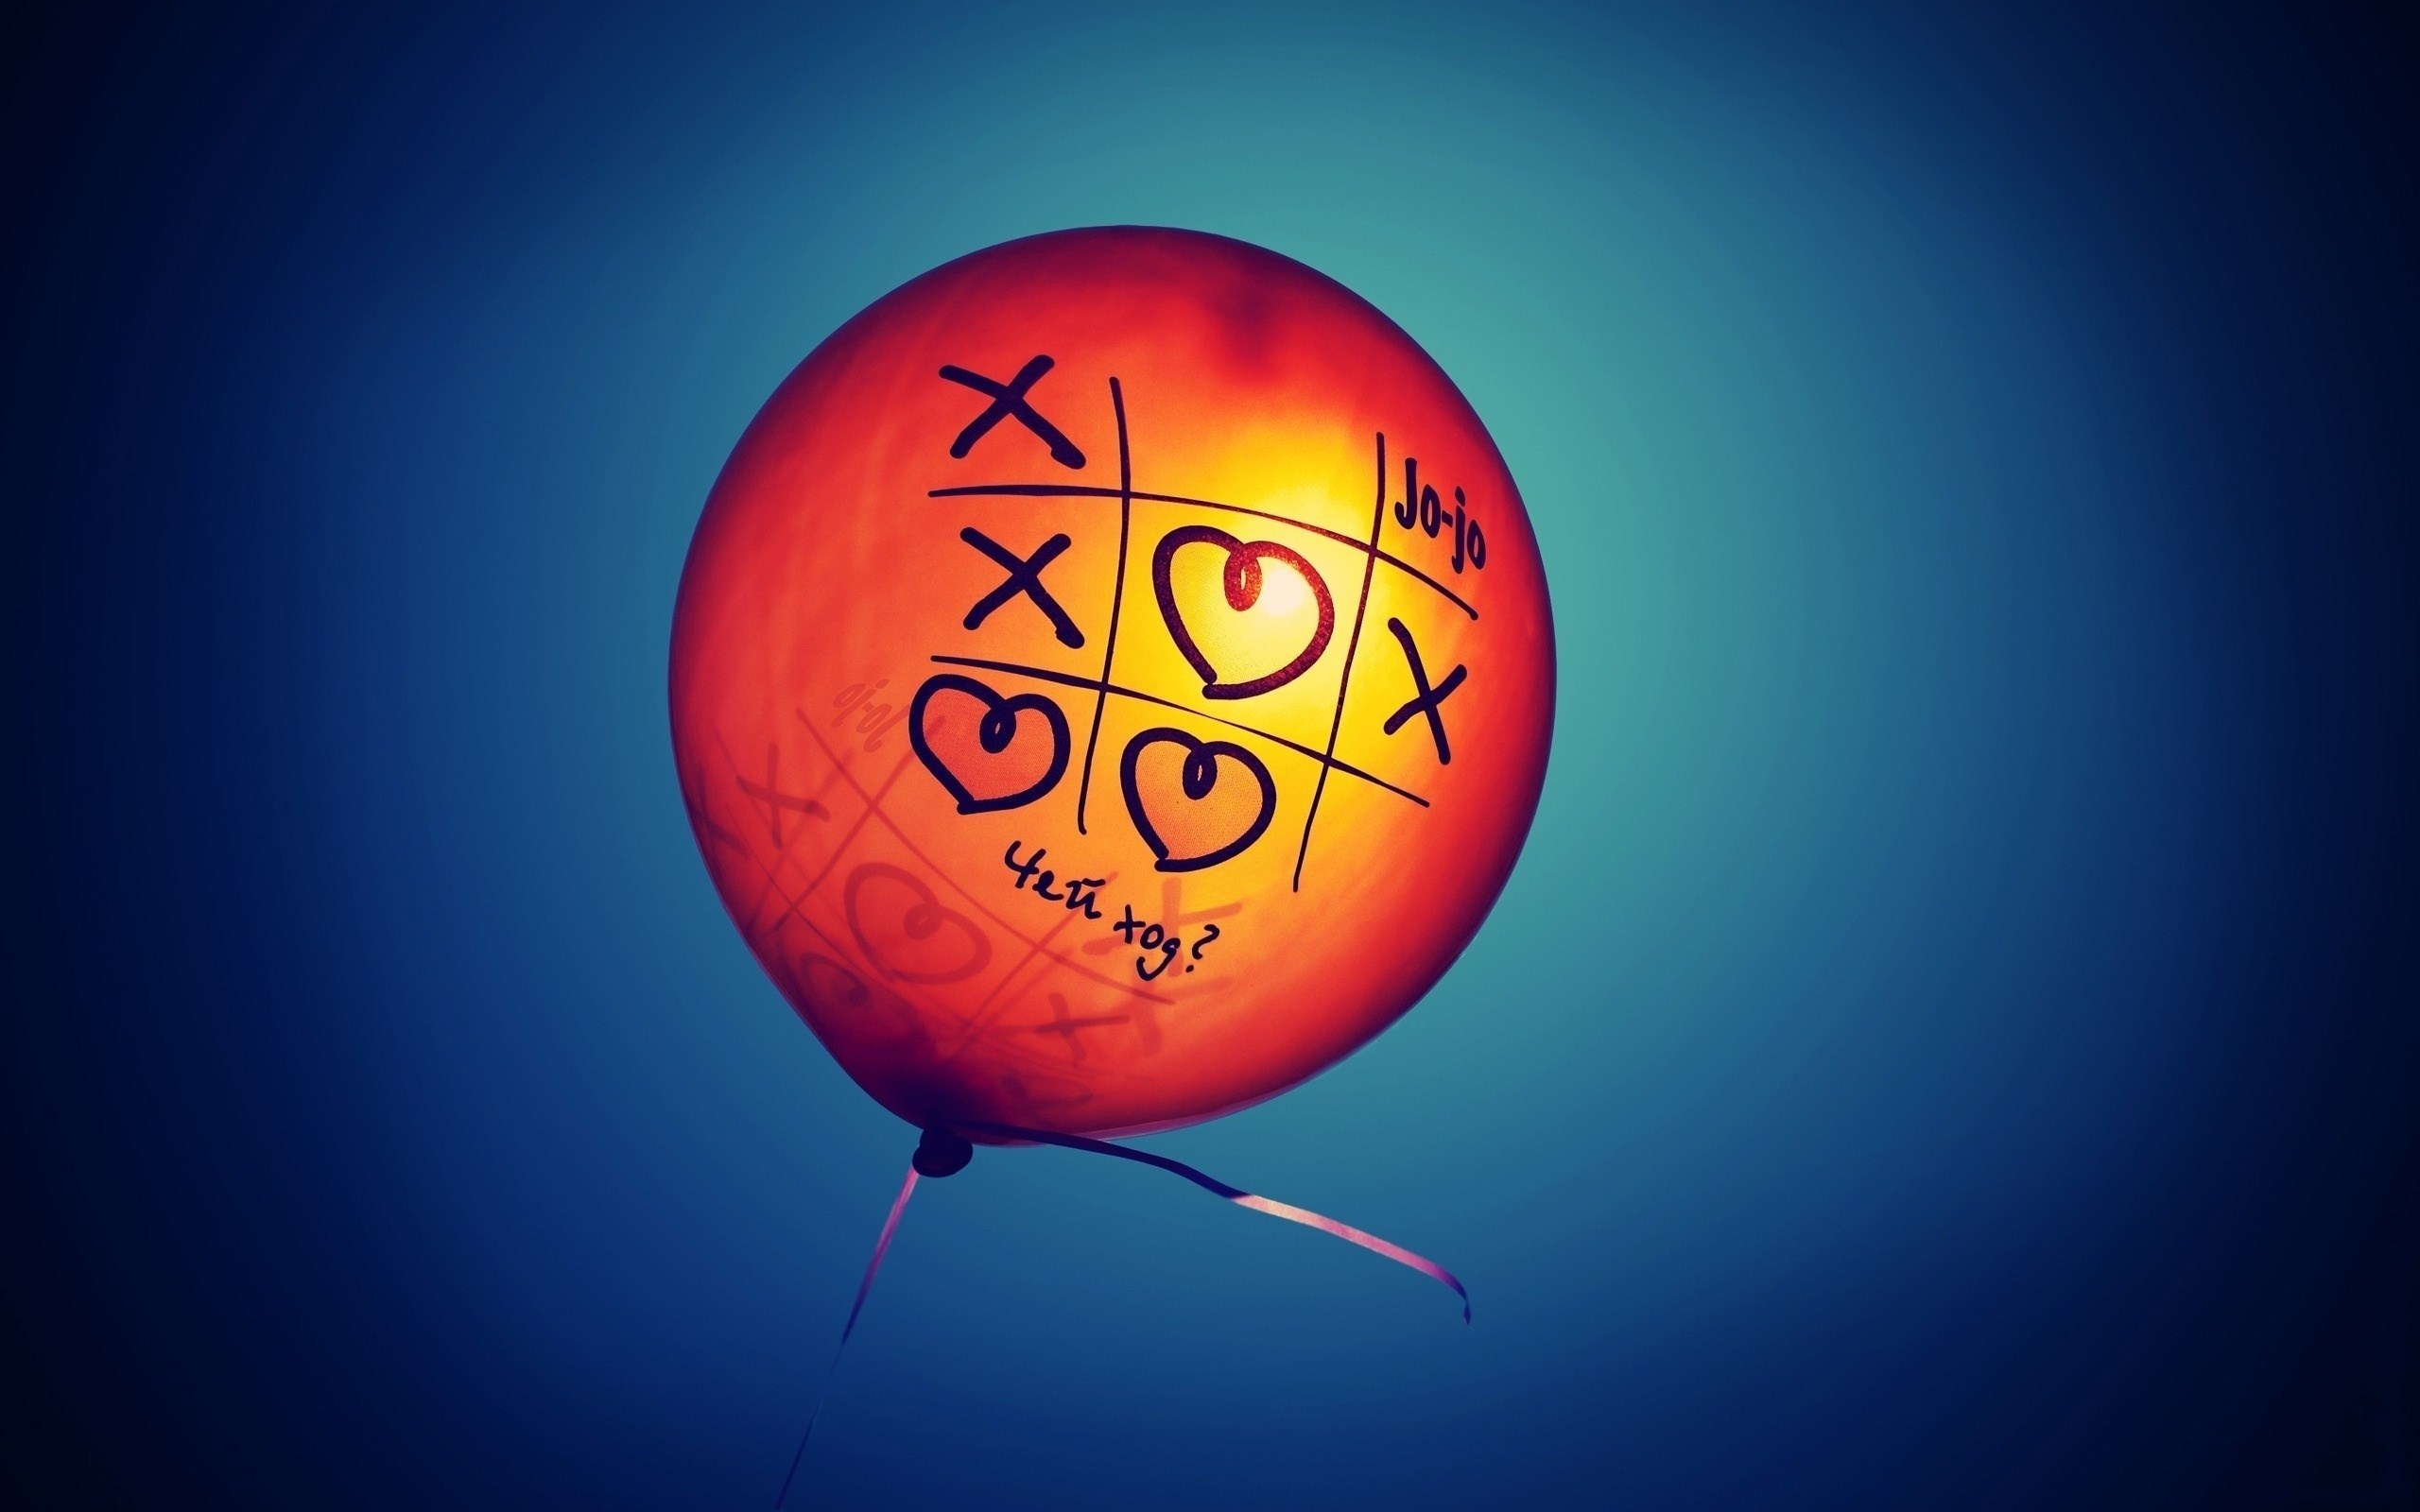 Balloon Hearts Love Mood